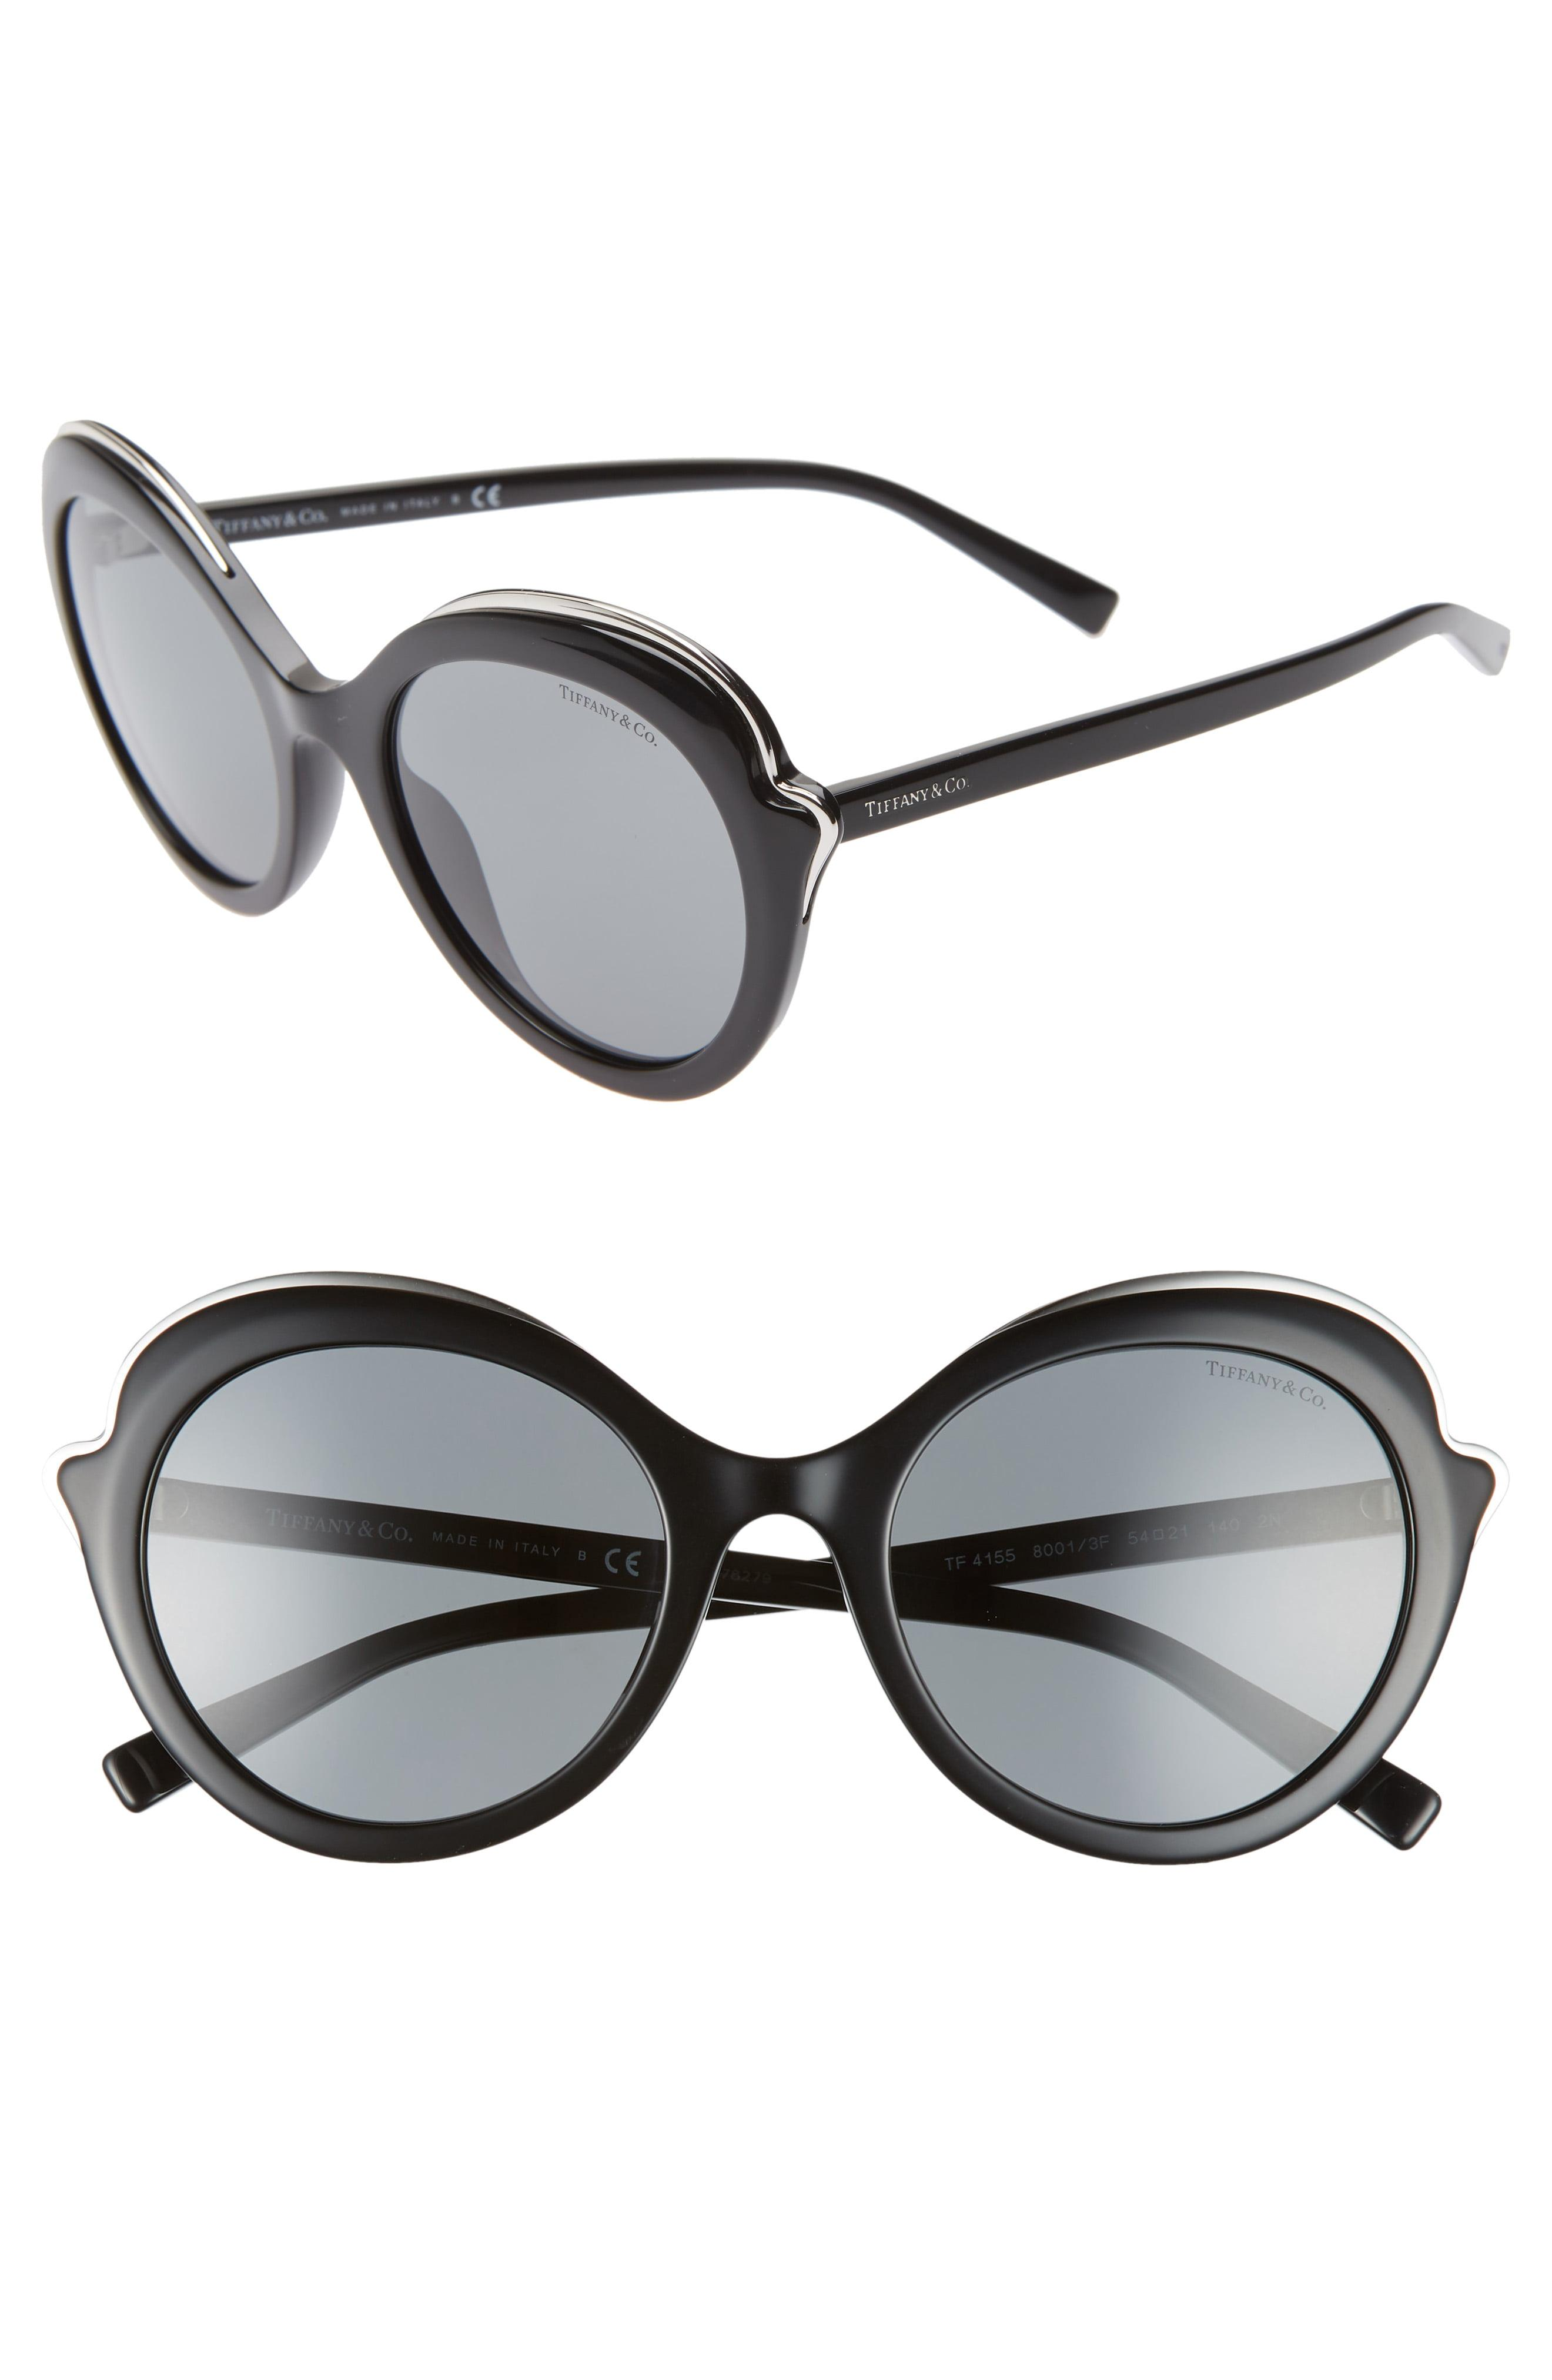 9dc0a9831c88d Tiffany   Co. Paper Flowers 54mm Round Sunglasses - Lyst